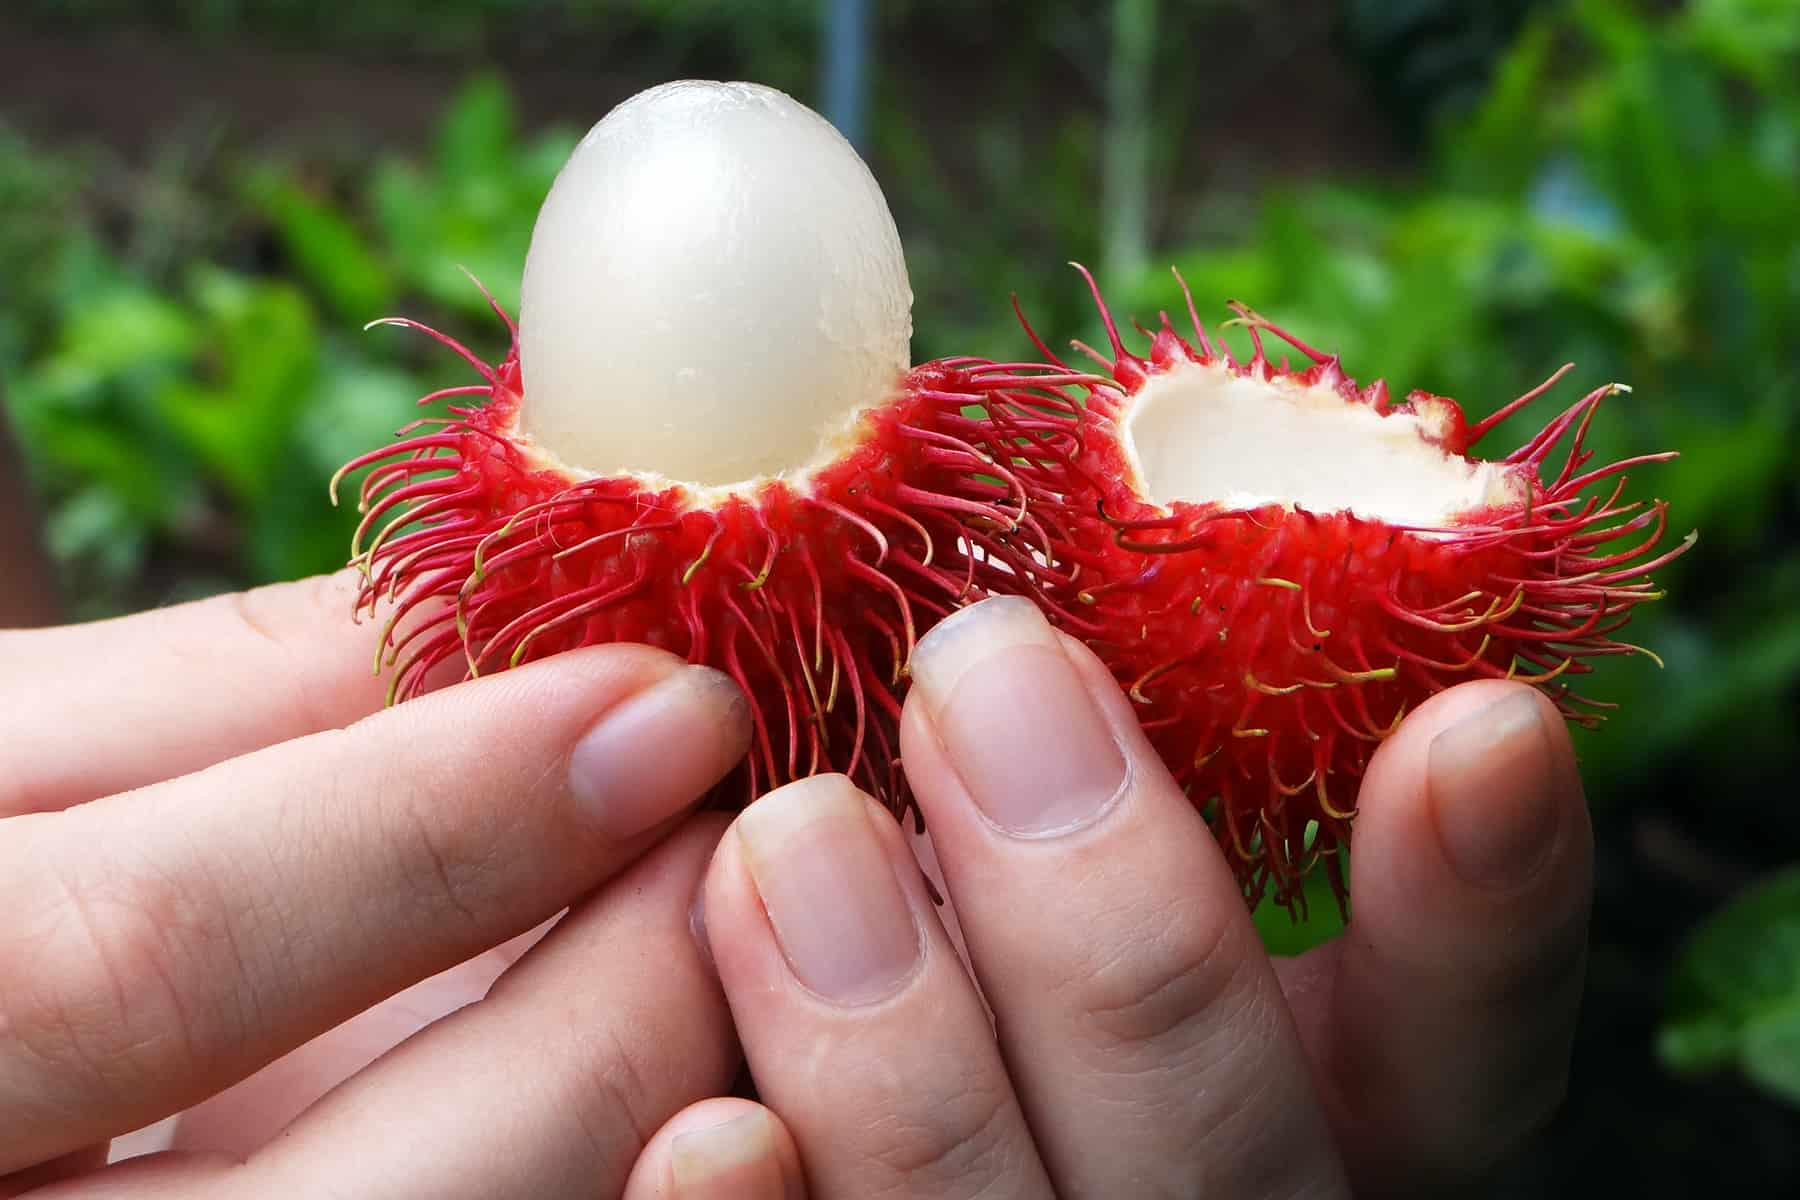 Rambután from Costa Rica